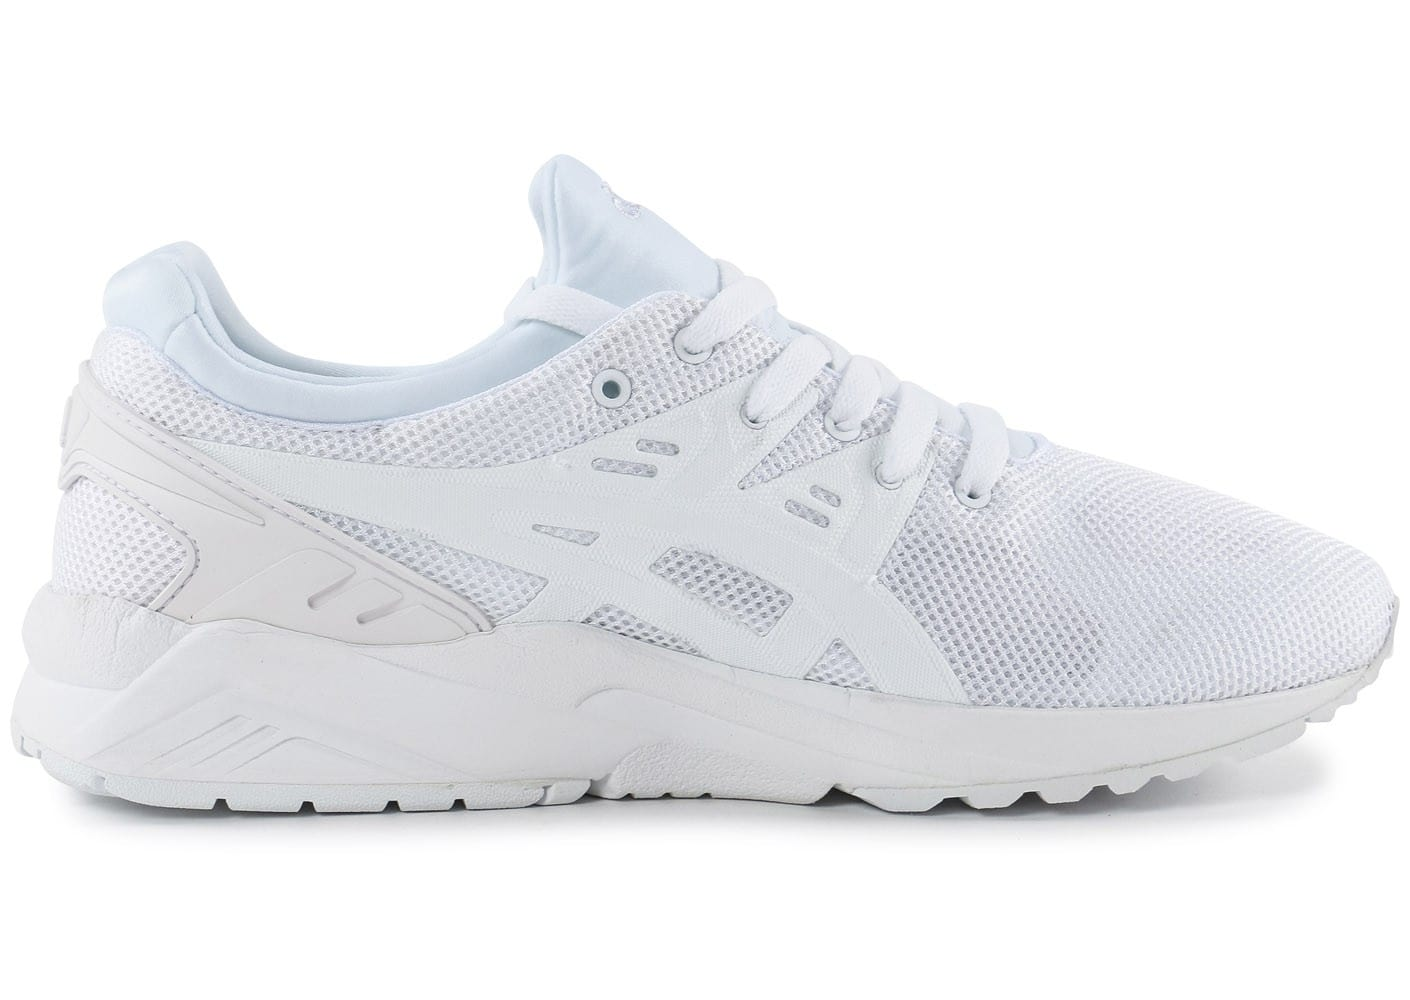 asics gel kayano trainer evo blanche chaussures baskets homme chausport. Black Bedroom Furniture Sets. Home Design Ideas